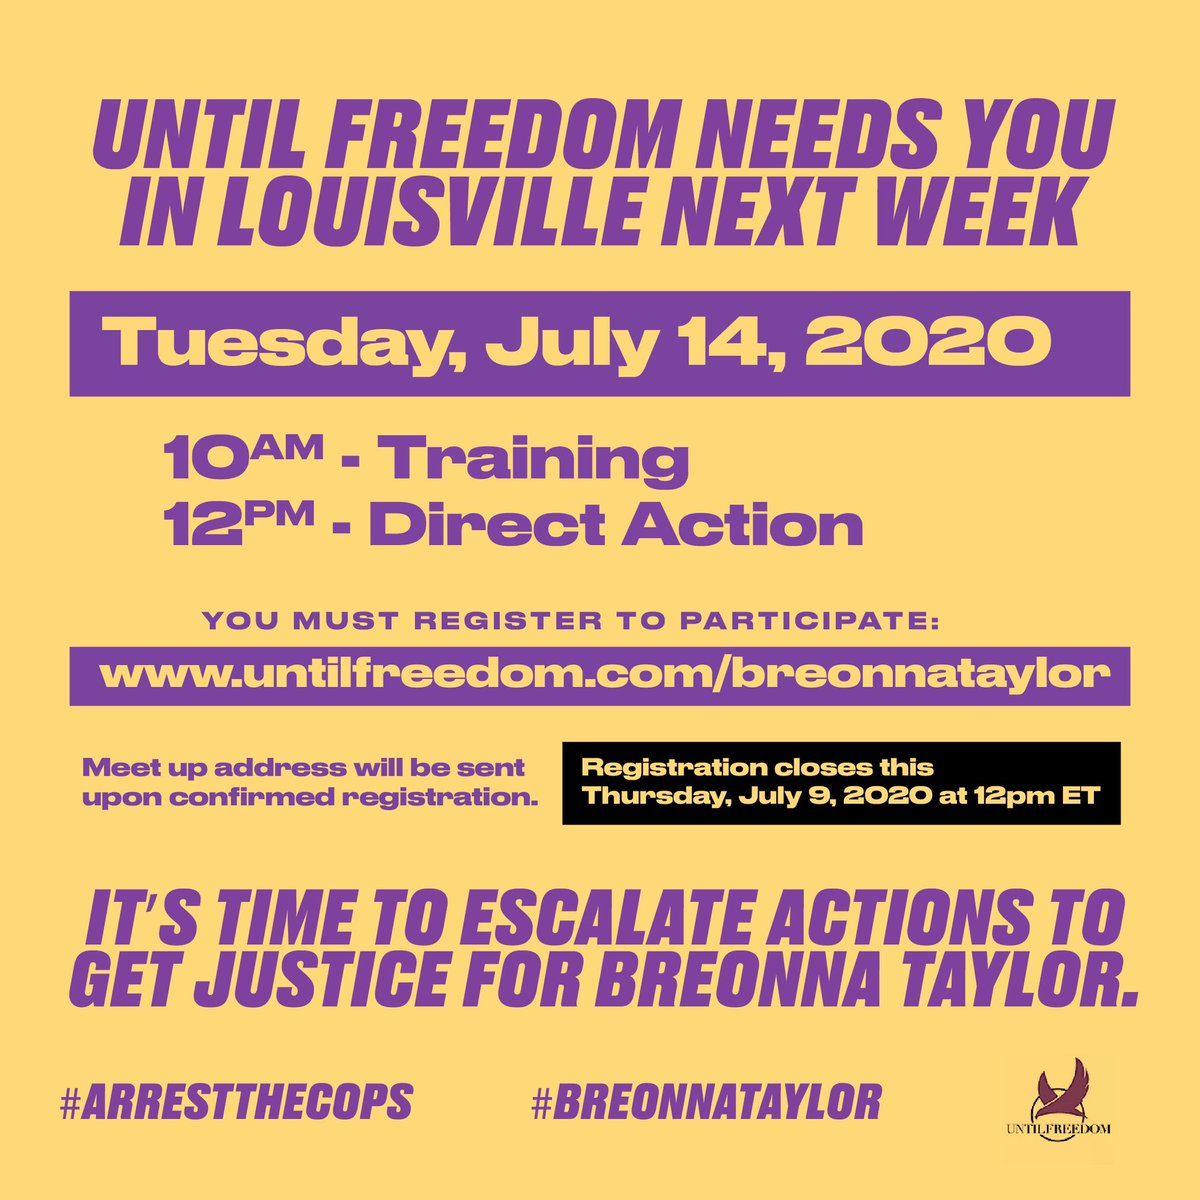 Time to escalate.  It's been 116+ days since #BreonnaTaylor was murdered by the Louisville Police.  Not one single police officer has been held accountable.  Time to put our bodies on the line. See you in Louisville next week.  #ArrestTheCops https://t.co/aAav8IXIsd